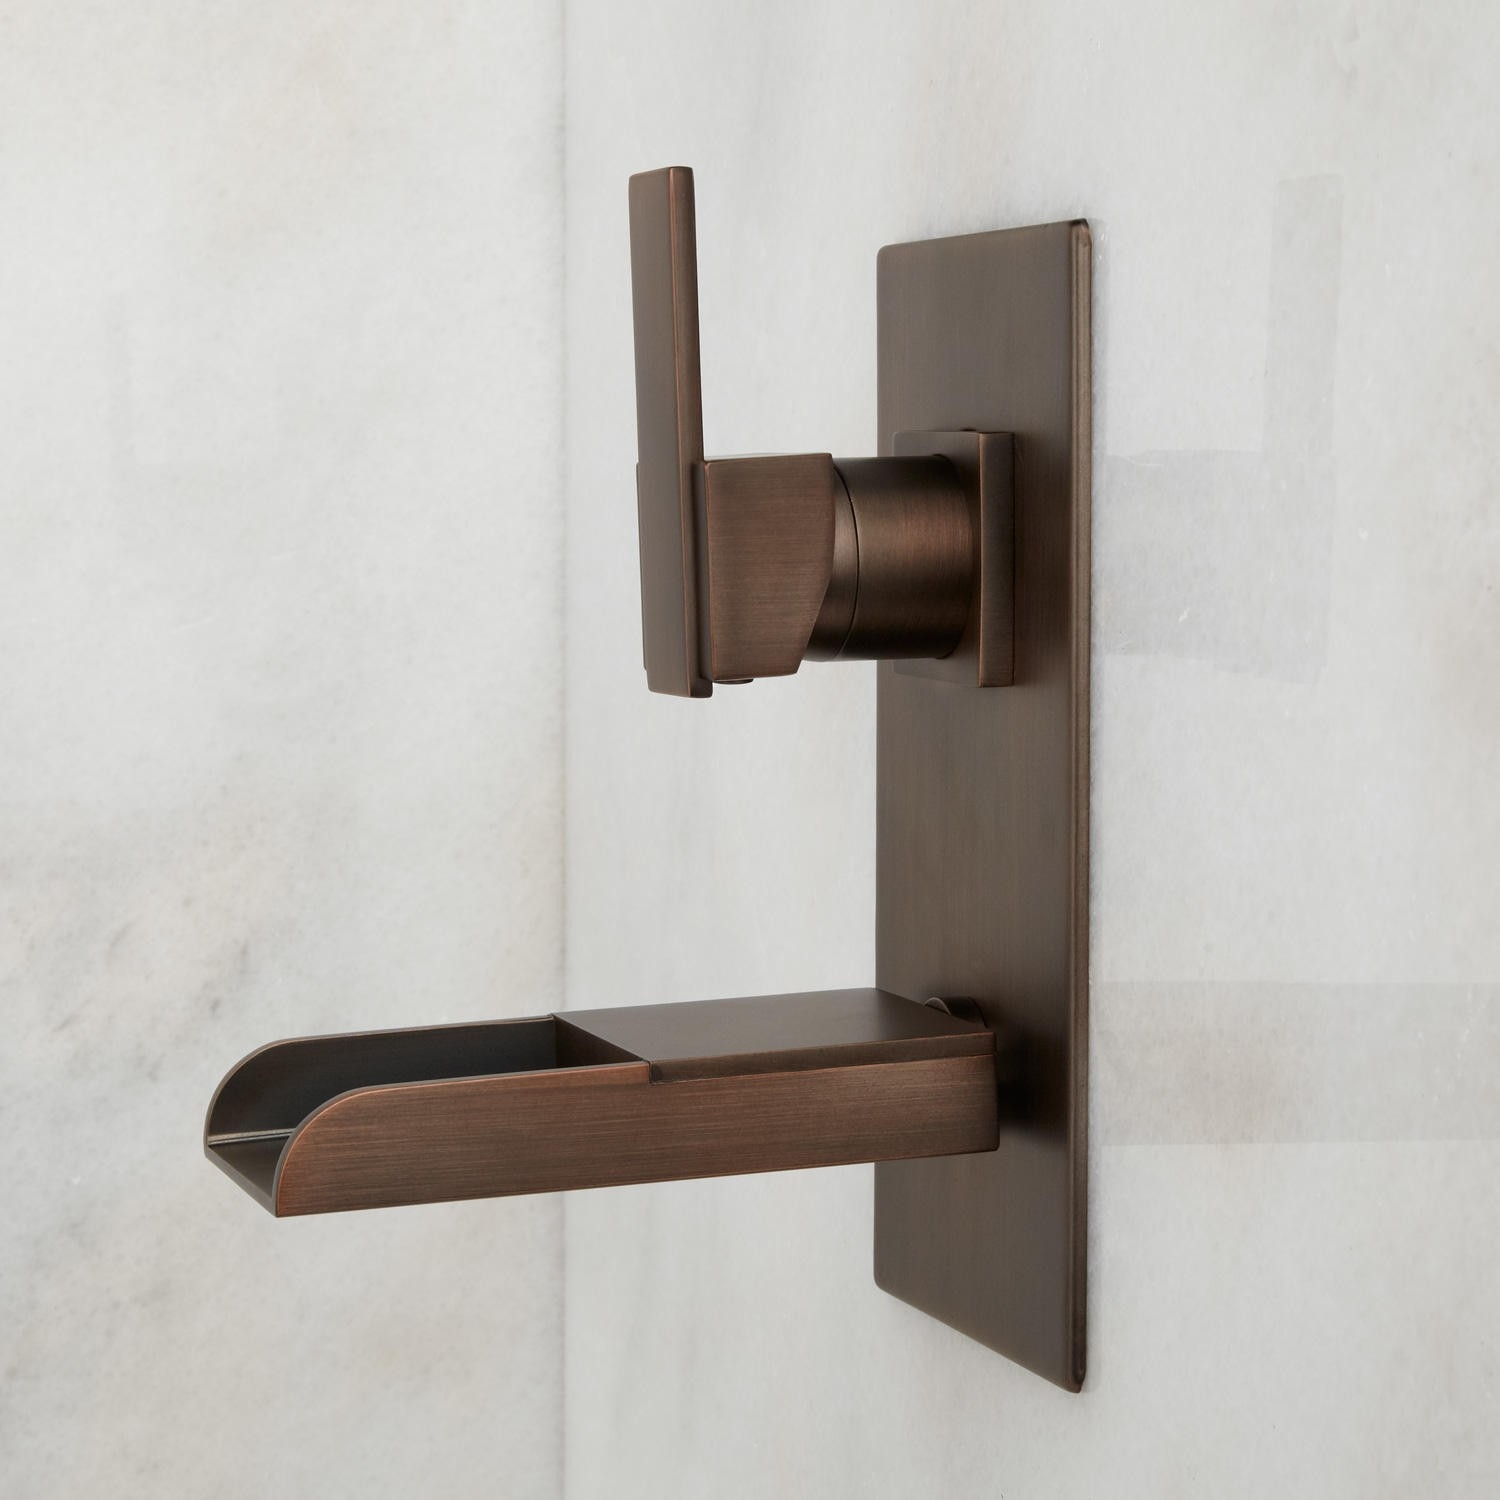 Ideas, wall mounted waterfall faucets for tubs wall mounted waterfall faucets for tubs willis wall mount bathroom waterfall faucet bathroom 1500 x 1500 2  .